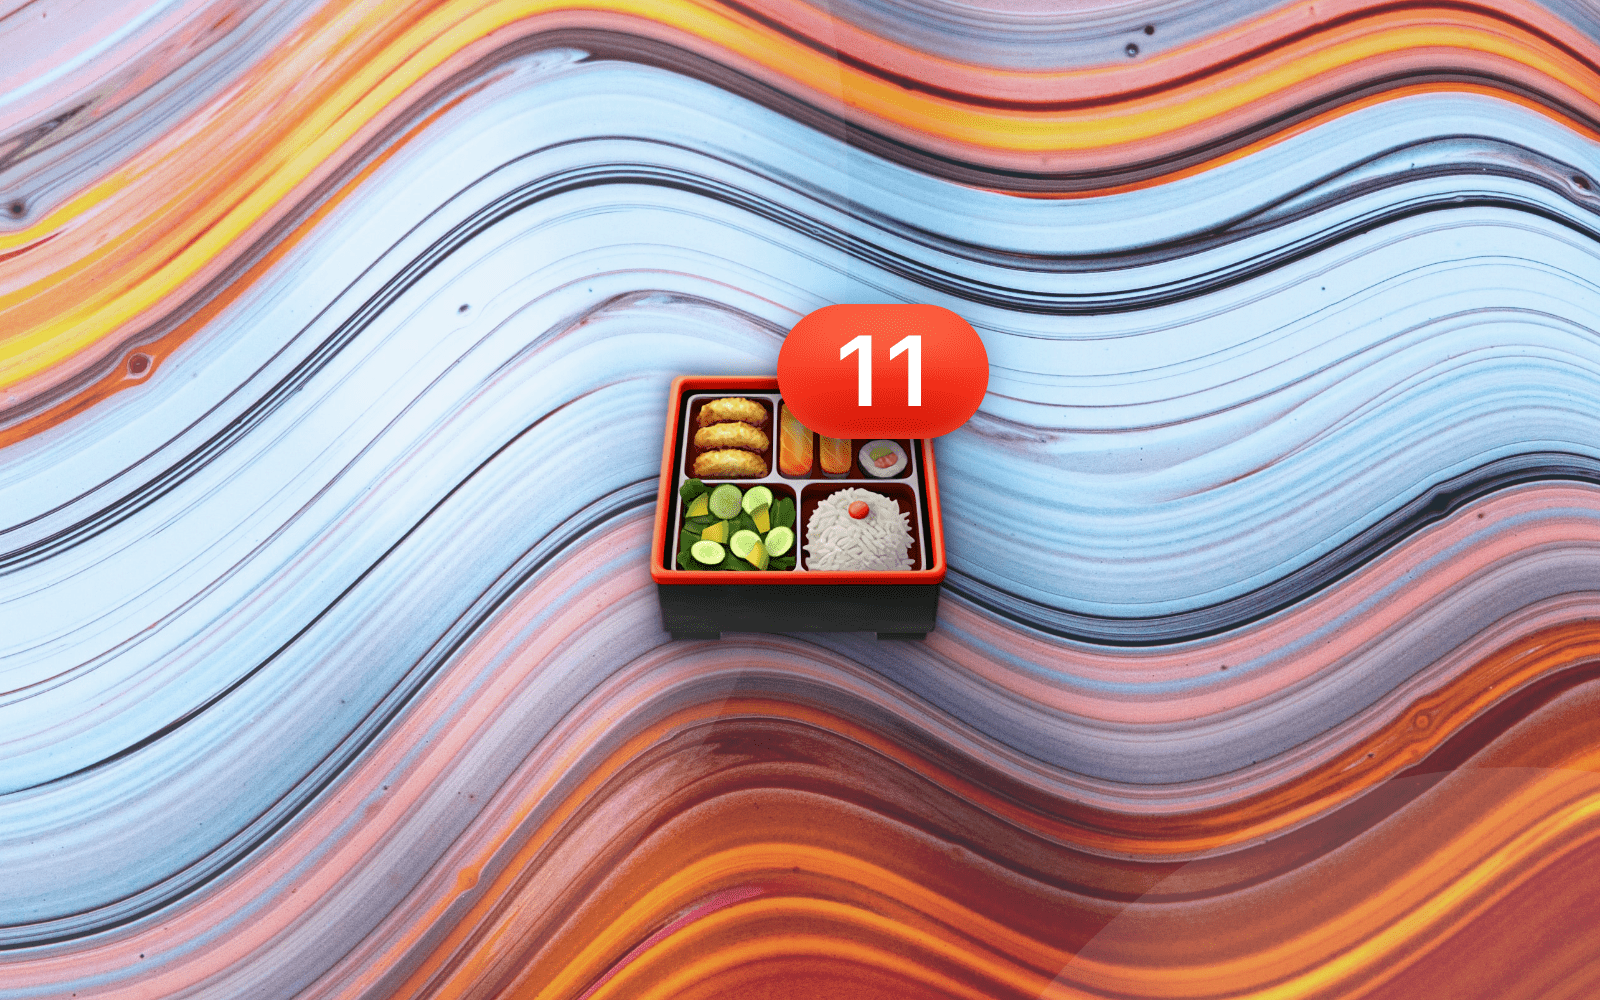 Bento box emoji with number 11 badge resting on a abstract waving background